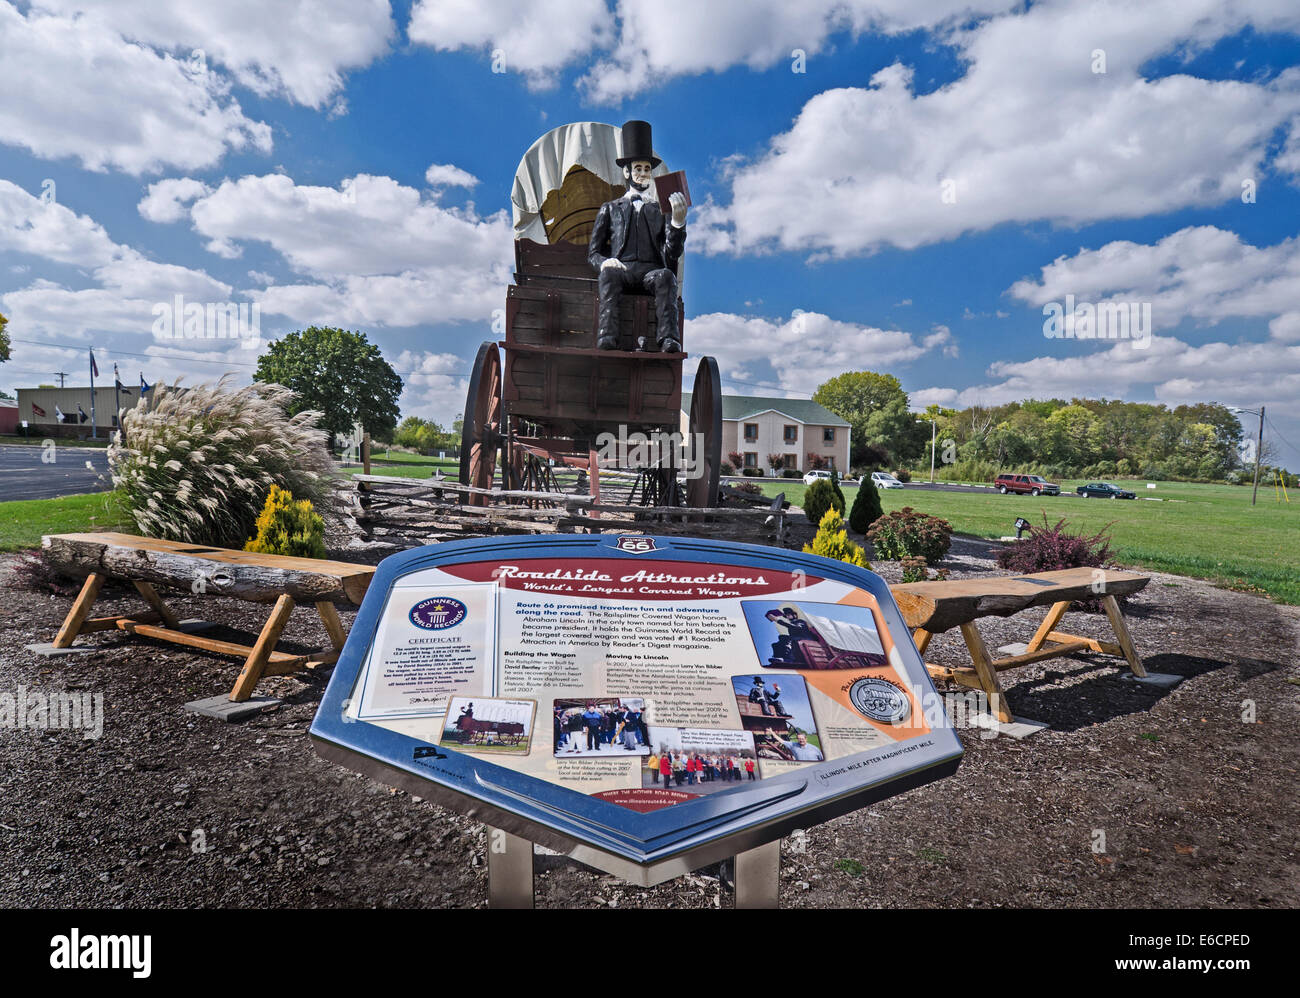 The Railsplitter Covered Wagon features Abraham Lincoln sitting on a covered wagon reading a book - Stock Image